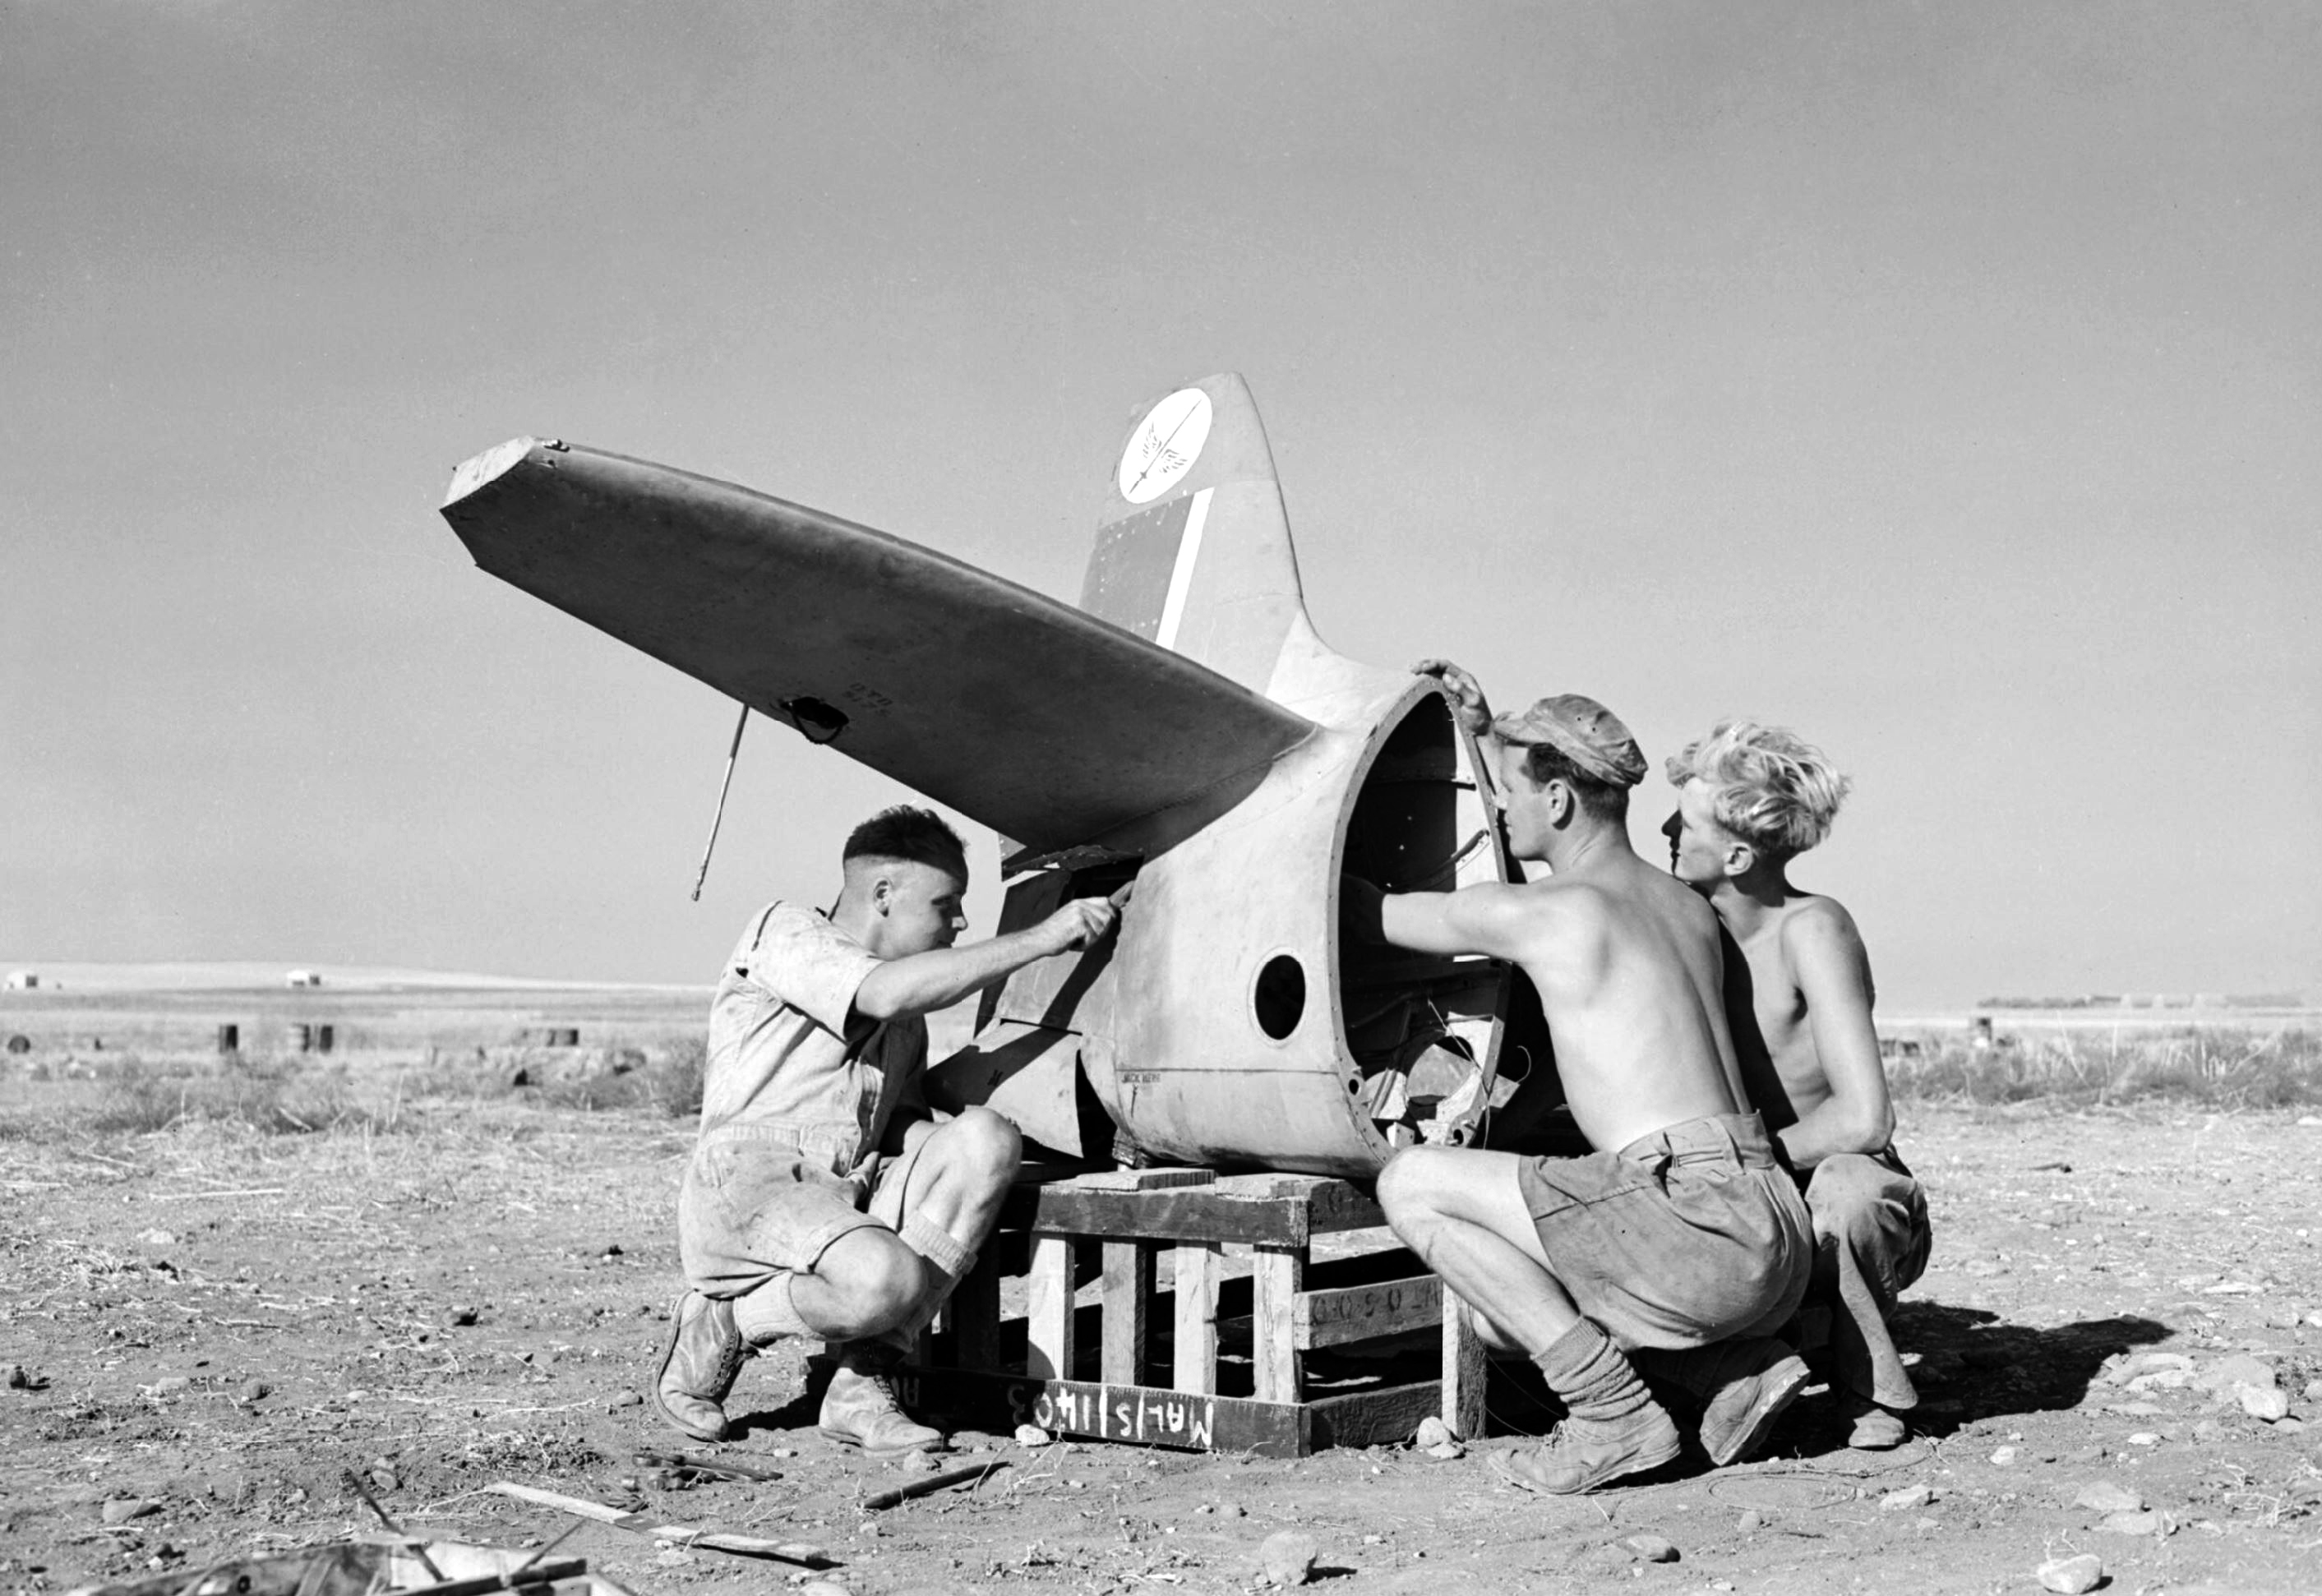 Spitfire tail section from RAF 601Sqn at Lentini West Sicily 1943 IWM CNA1329